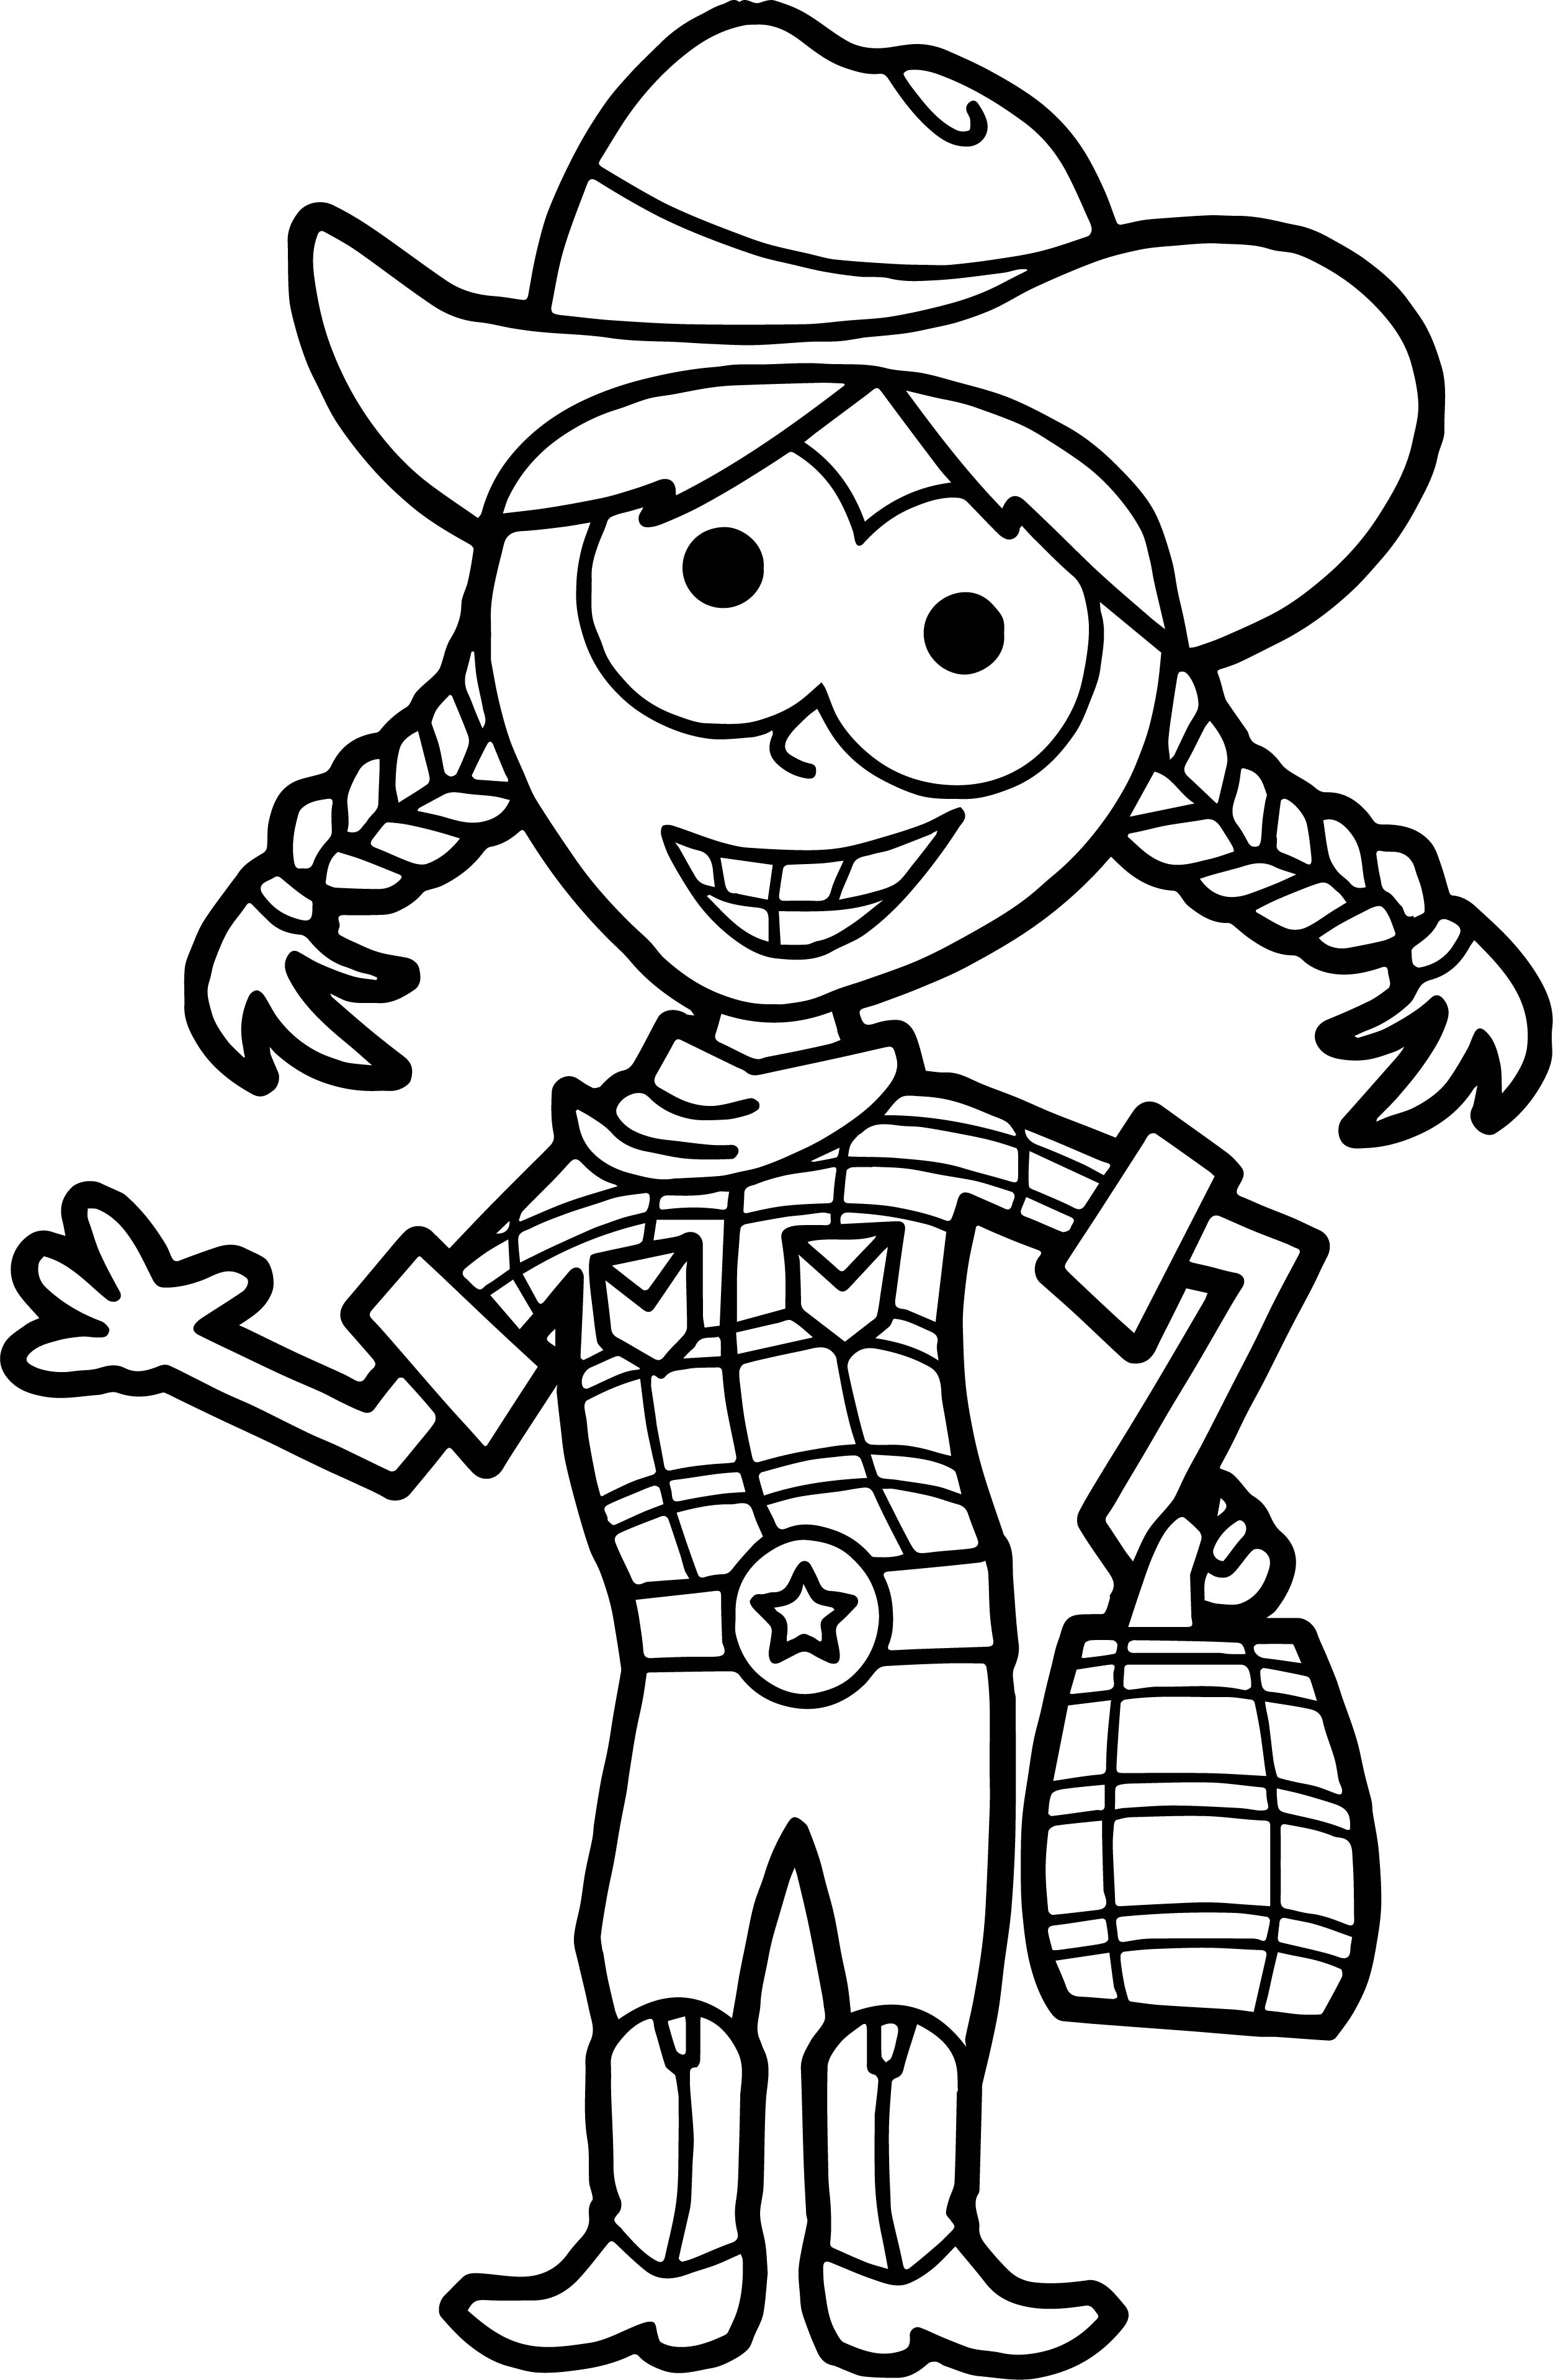 Home Free Halloween Trick Or Treat Cow Girl Free Coloring